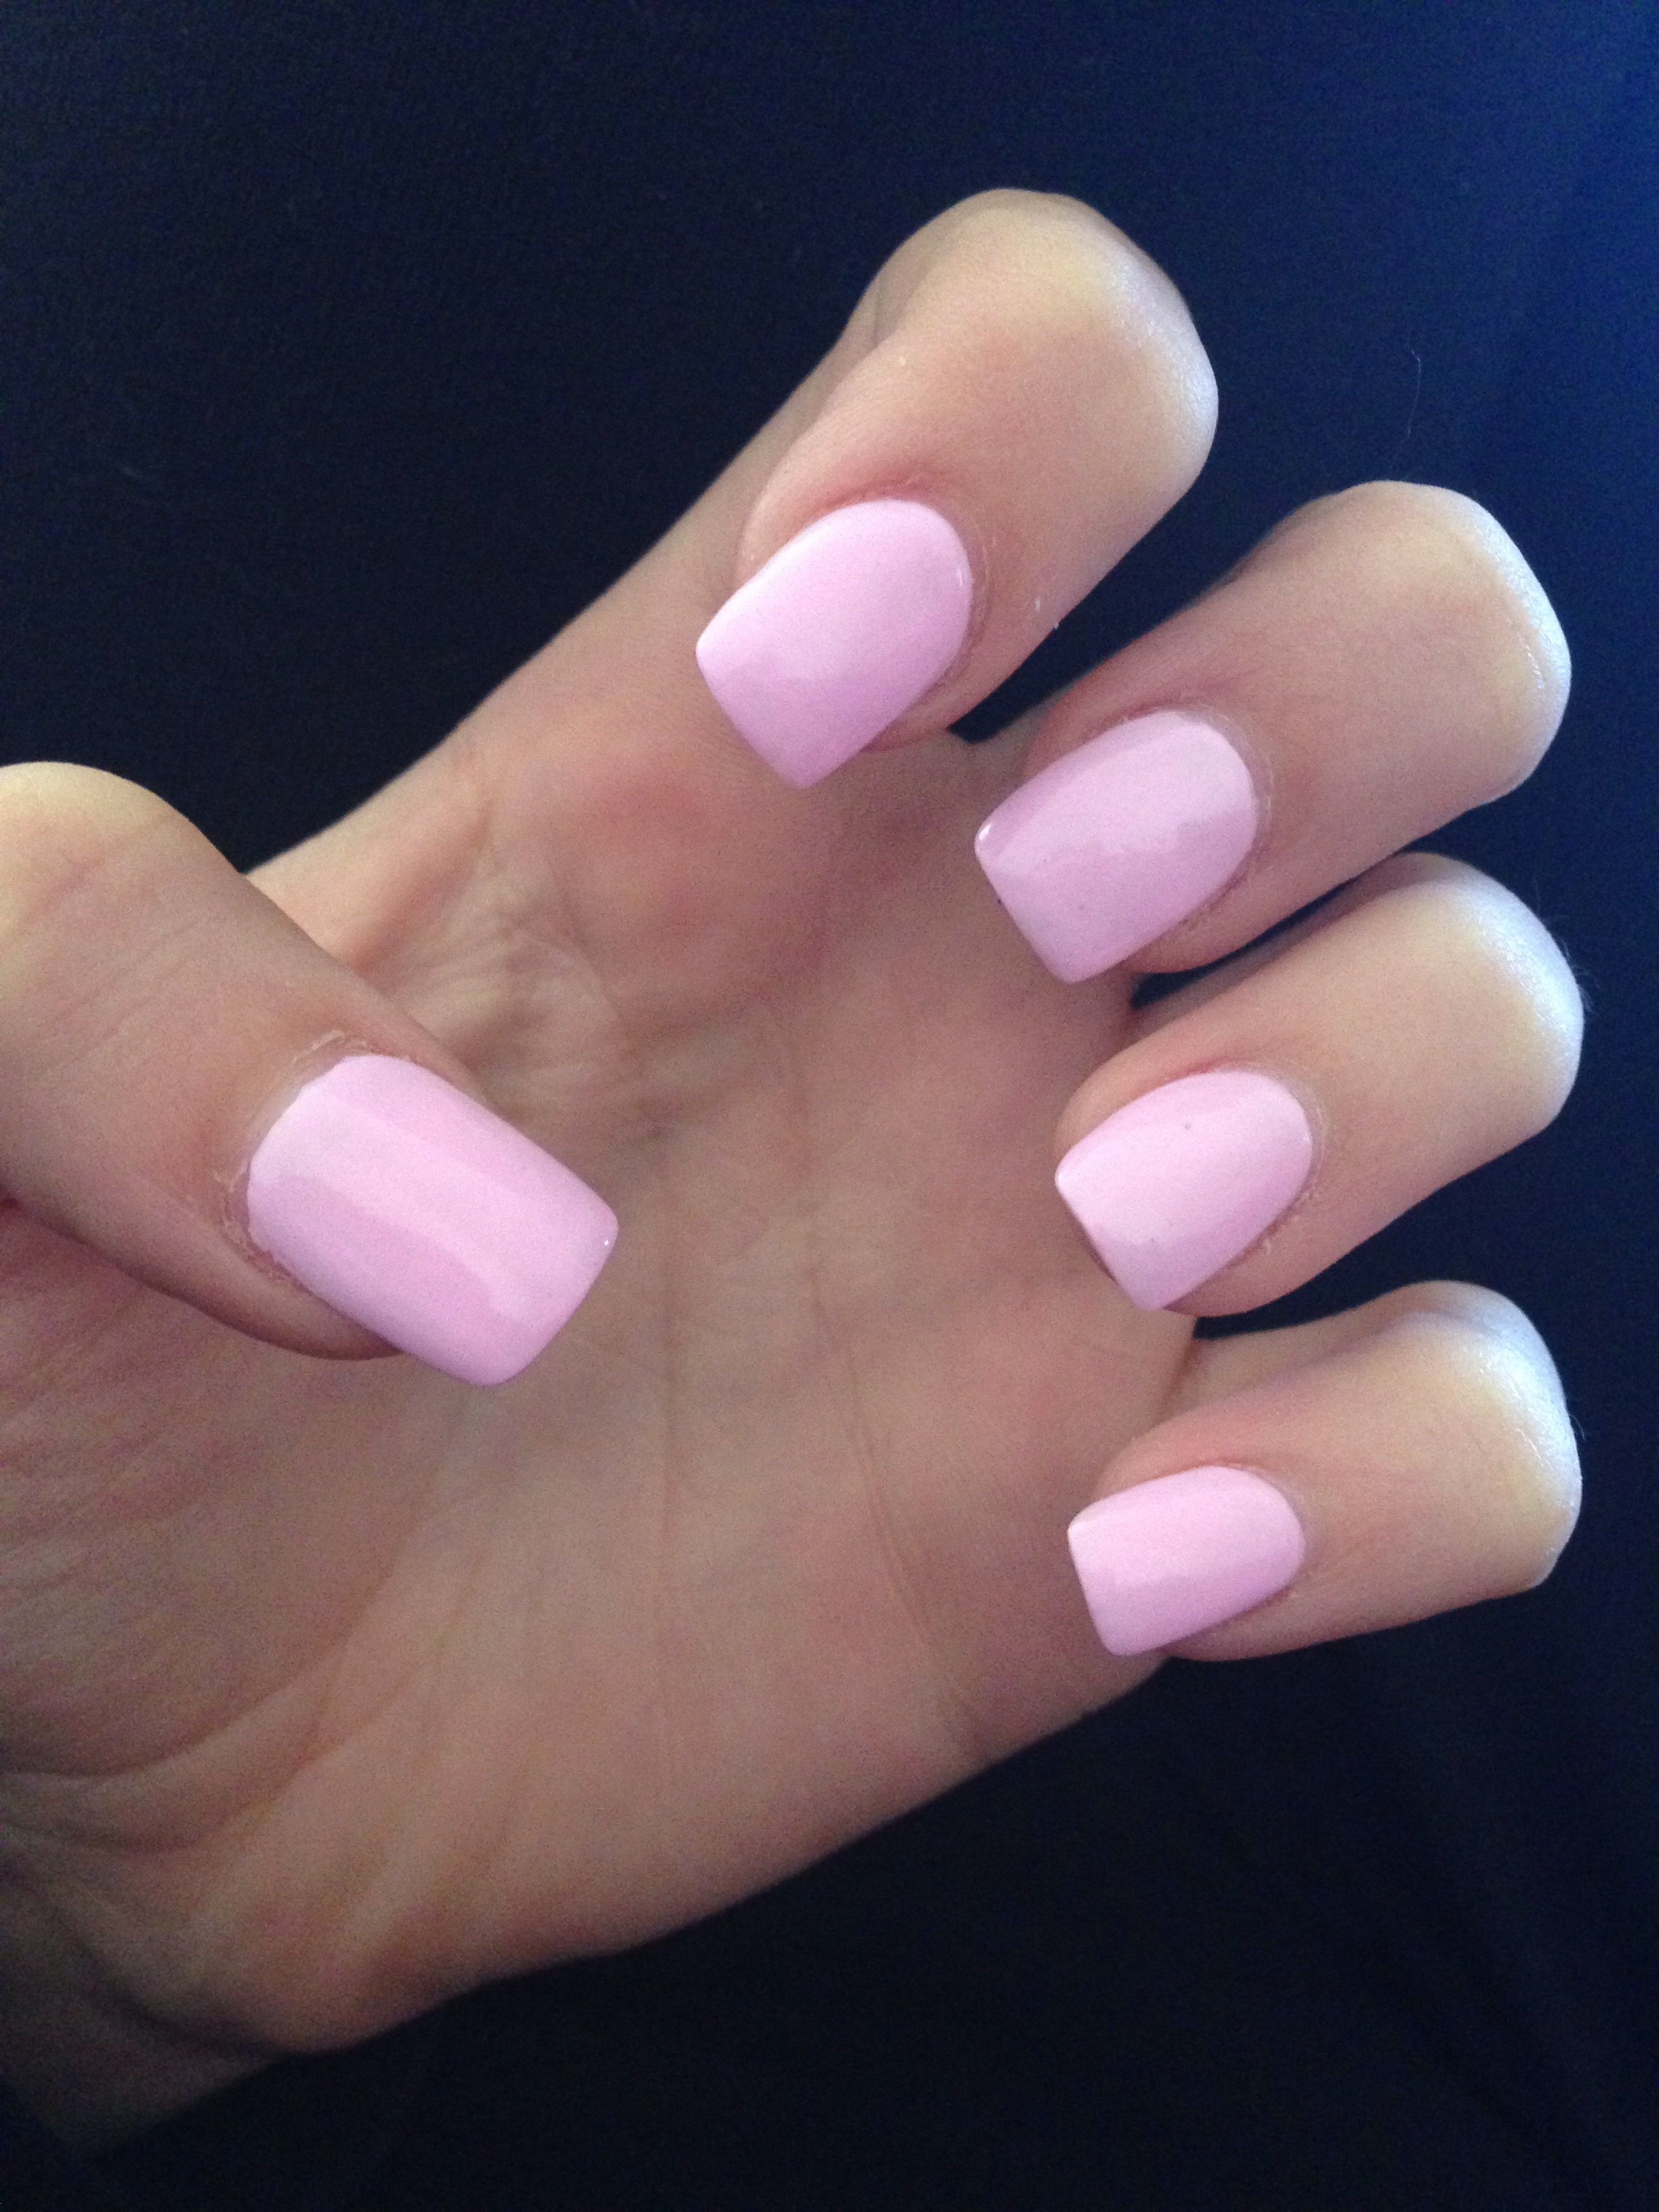 Light Pink Acrylic Nails Light Pink Acrylic Nails Pink Acrylic Nails Square Acrylic Nails